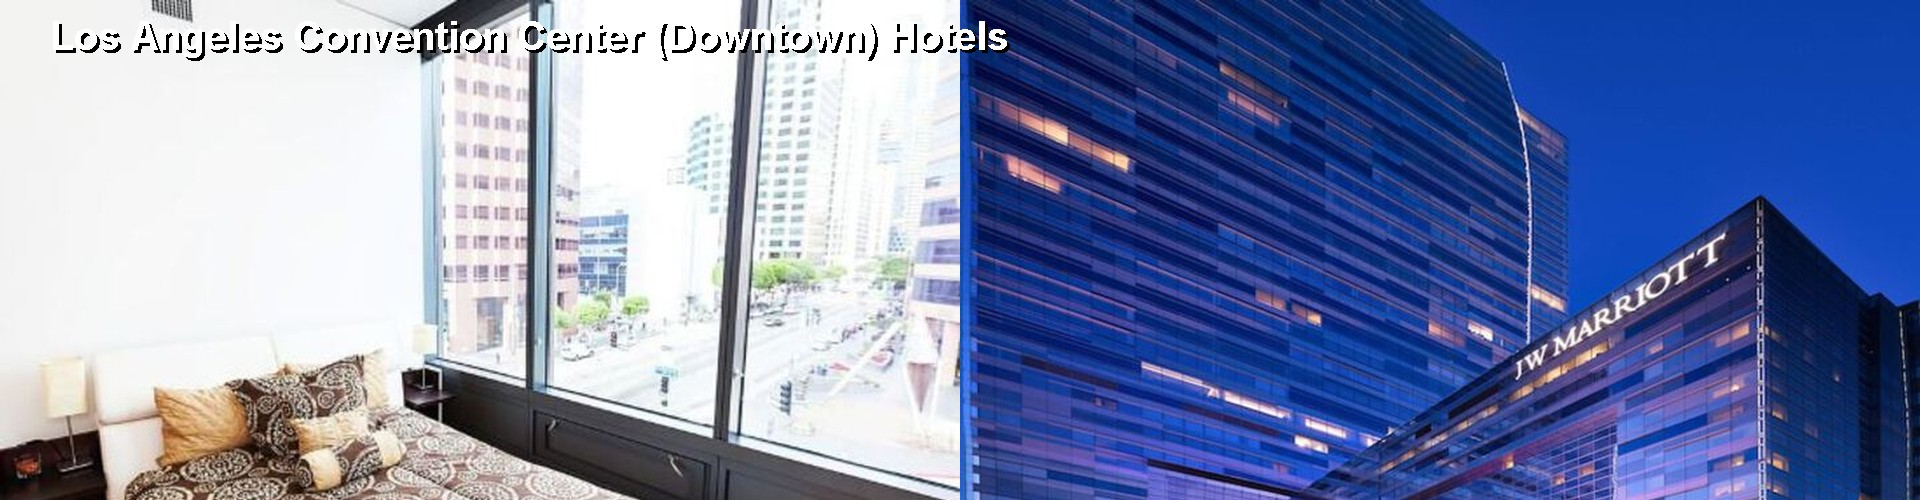 5 Best Hotels near Los Angeles Convention Center (Downtown)